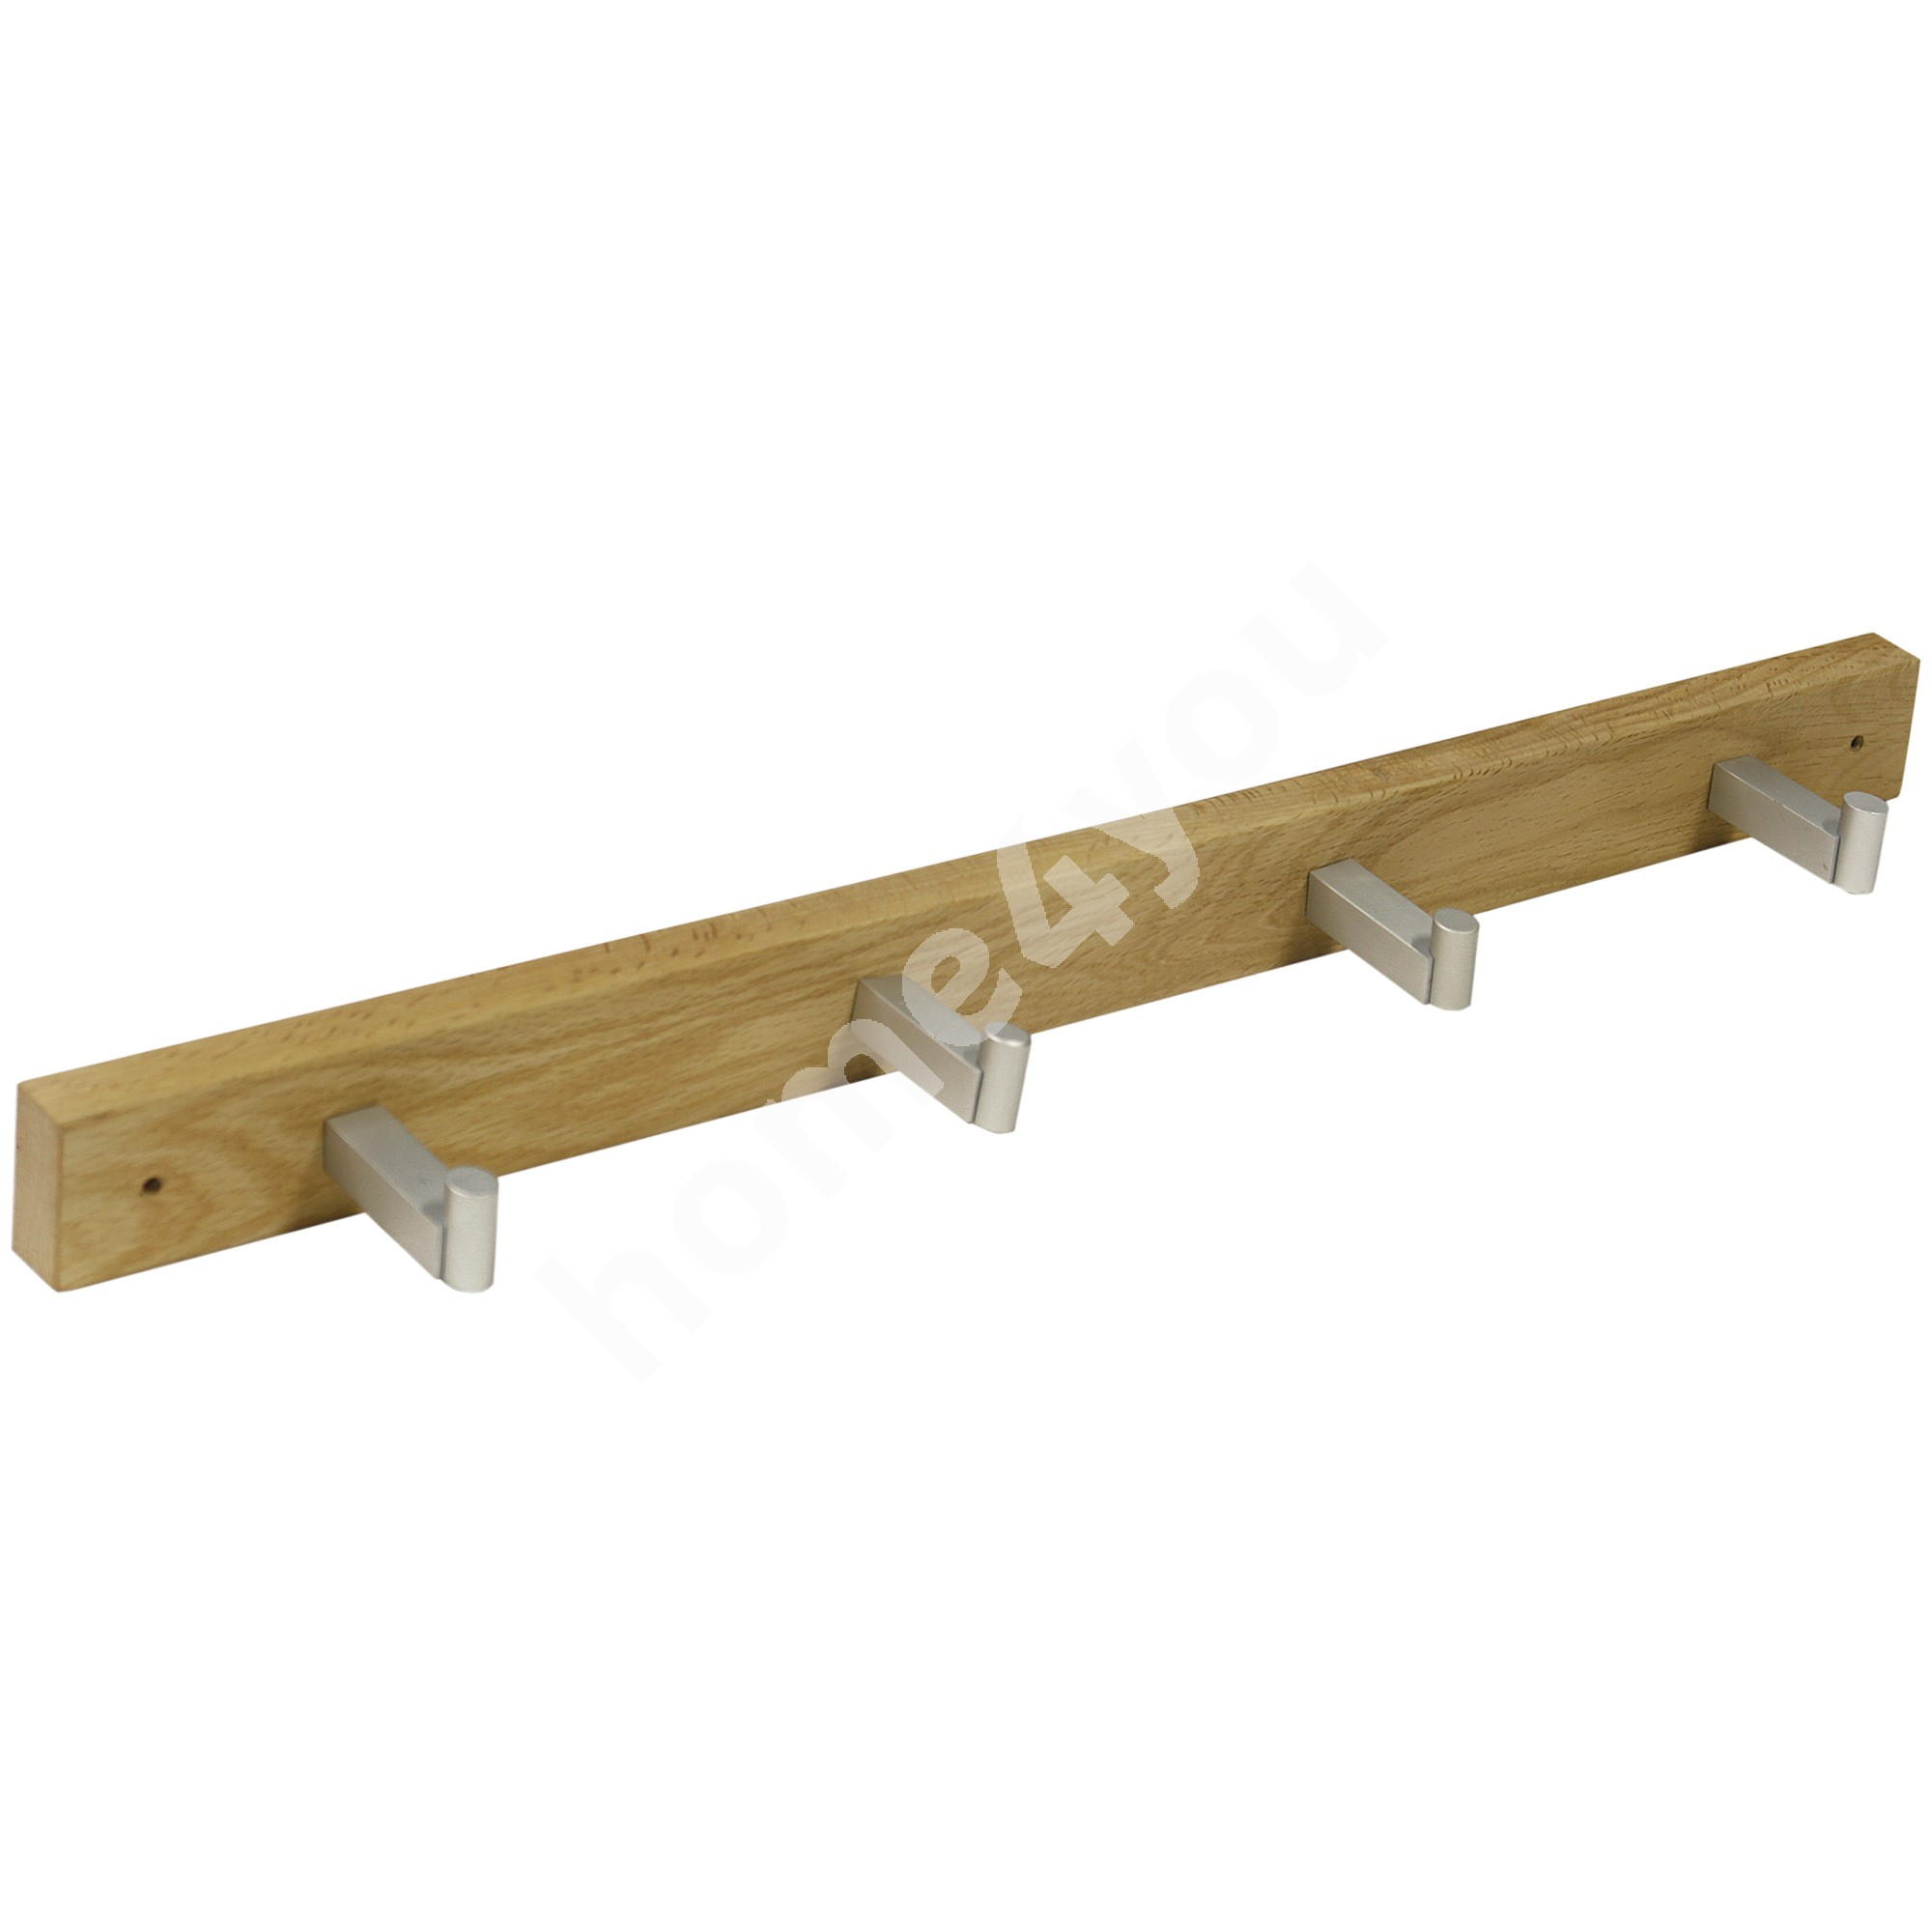 Rack MONDEO with 4-knobs, 51,5x4,5cm, wood: oak, finish: oiled